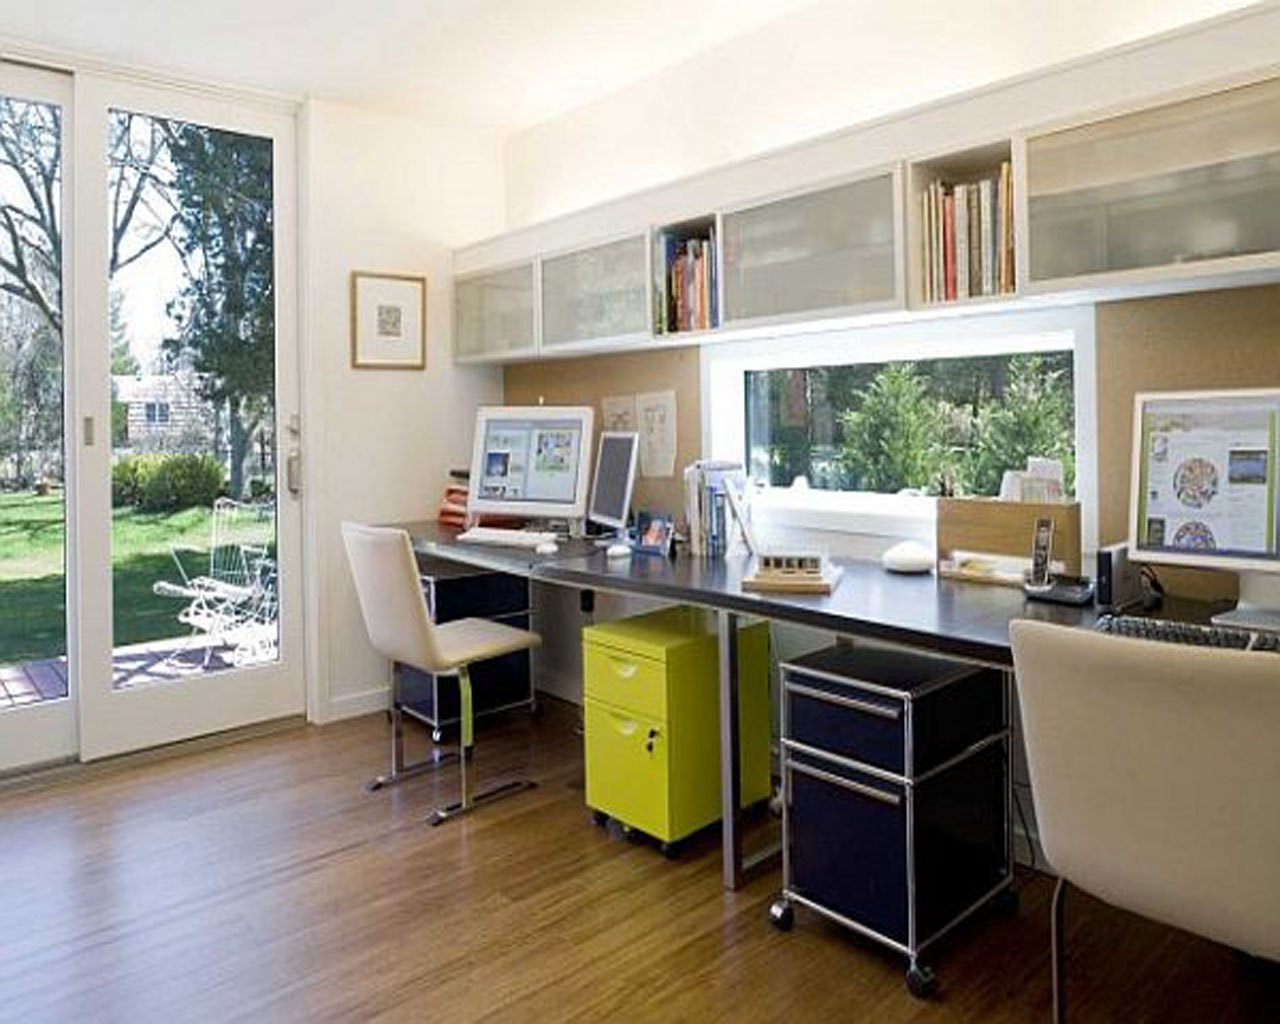 Home office design ideas on a budget interior inspiration Home office design images